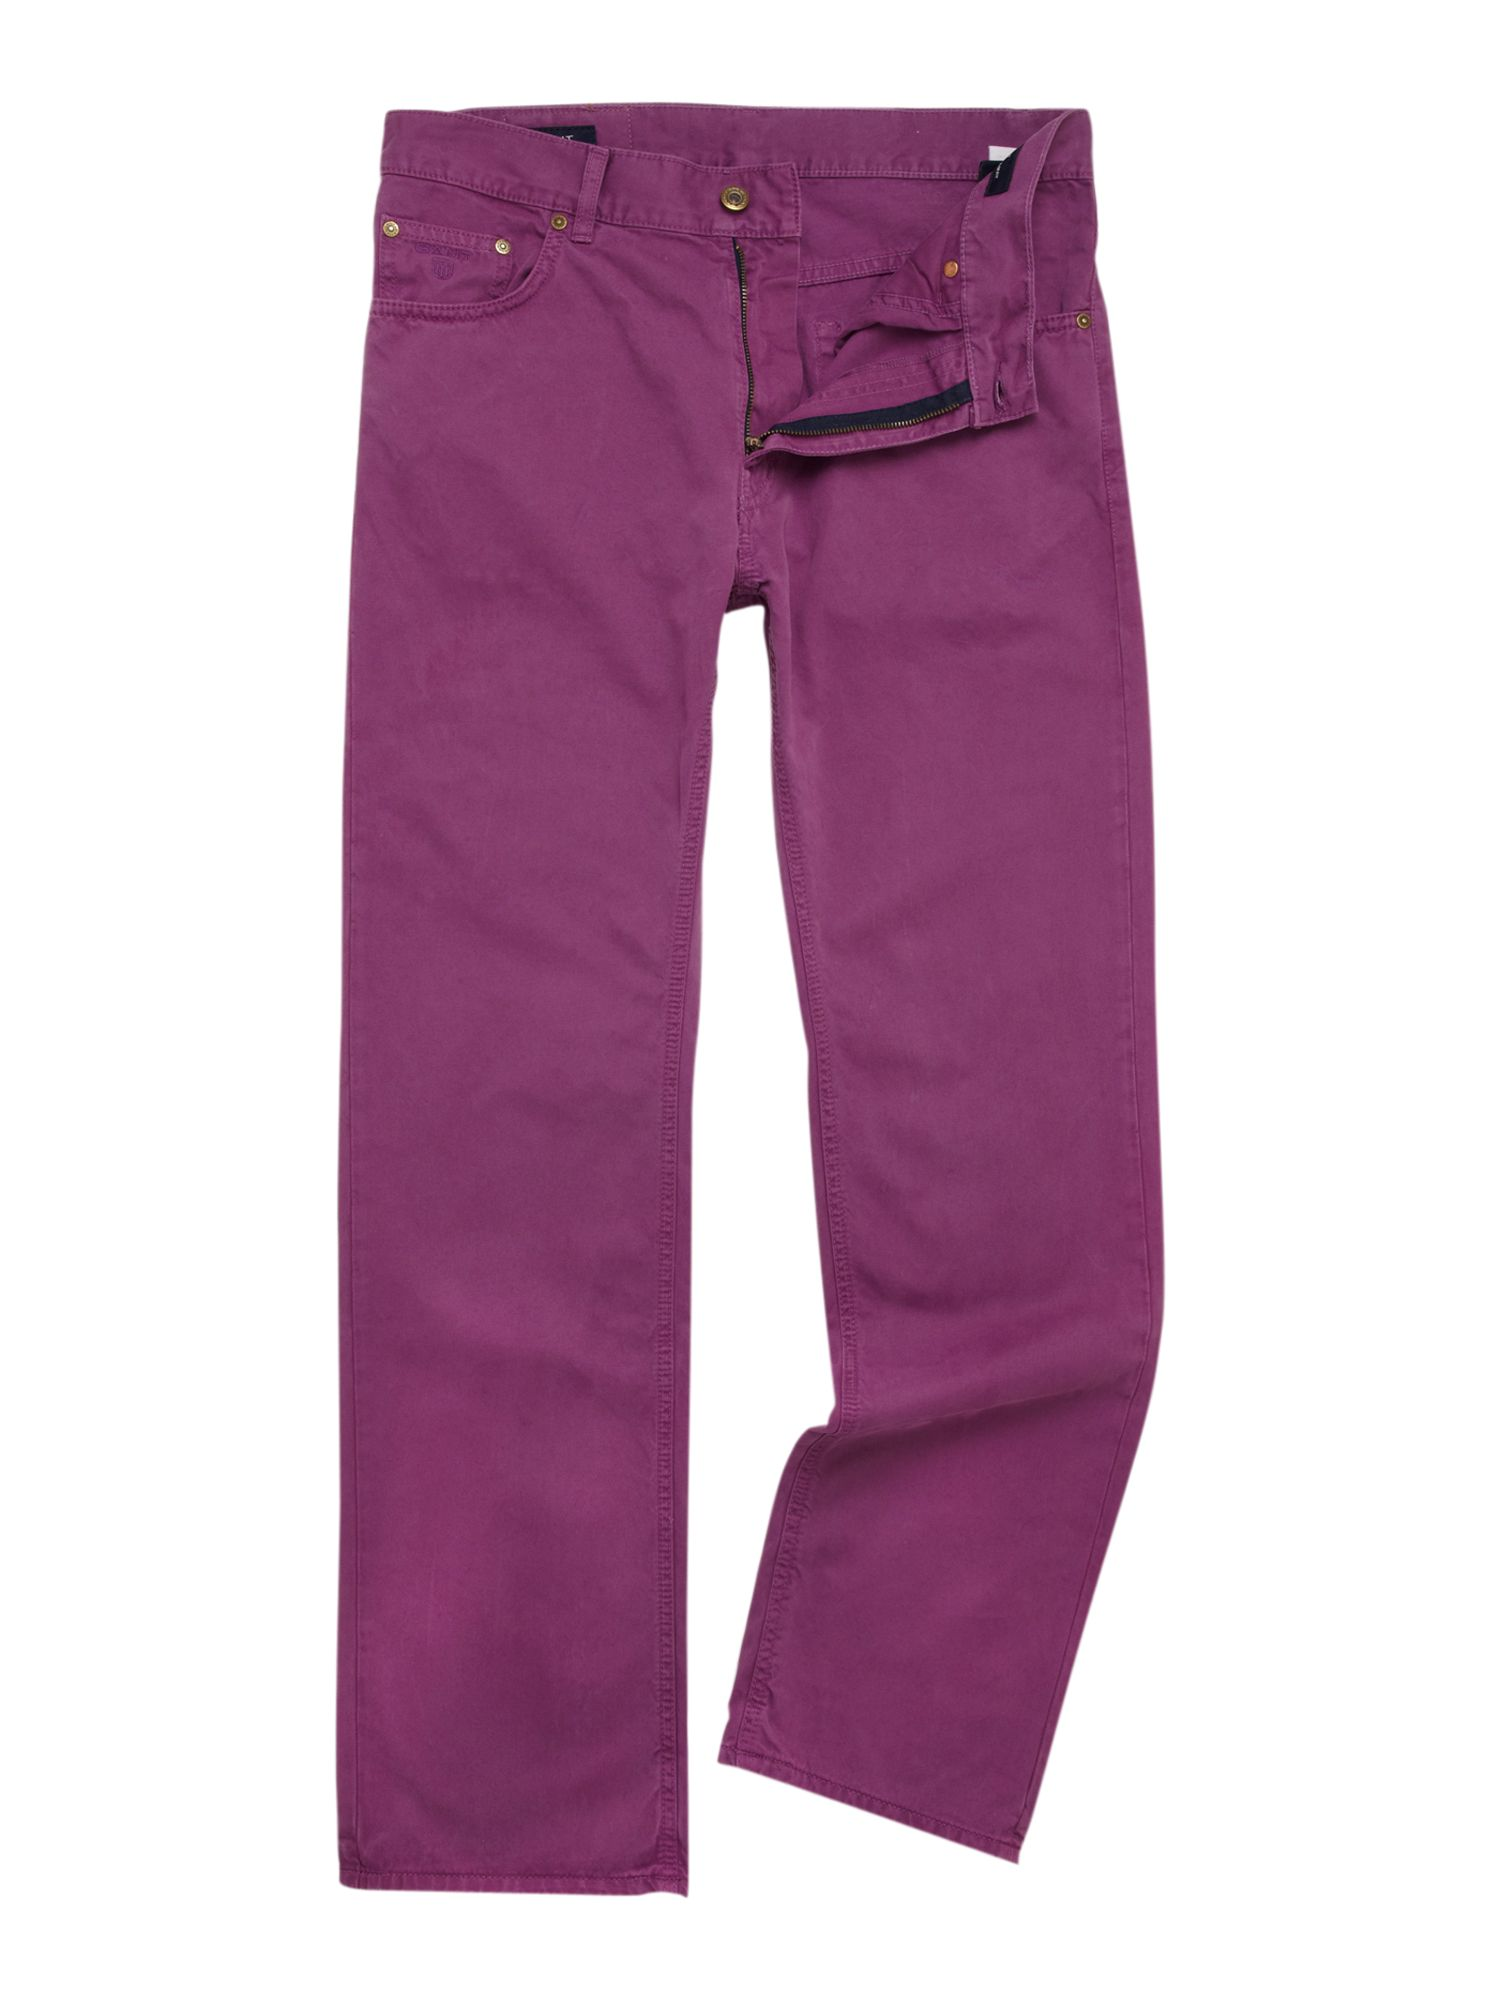 Regular fit cotton twill jeans